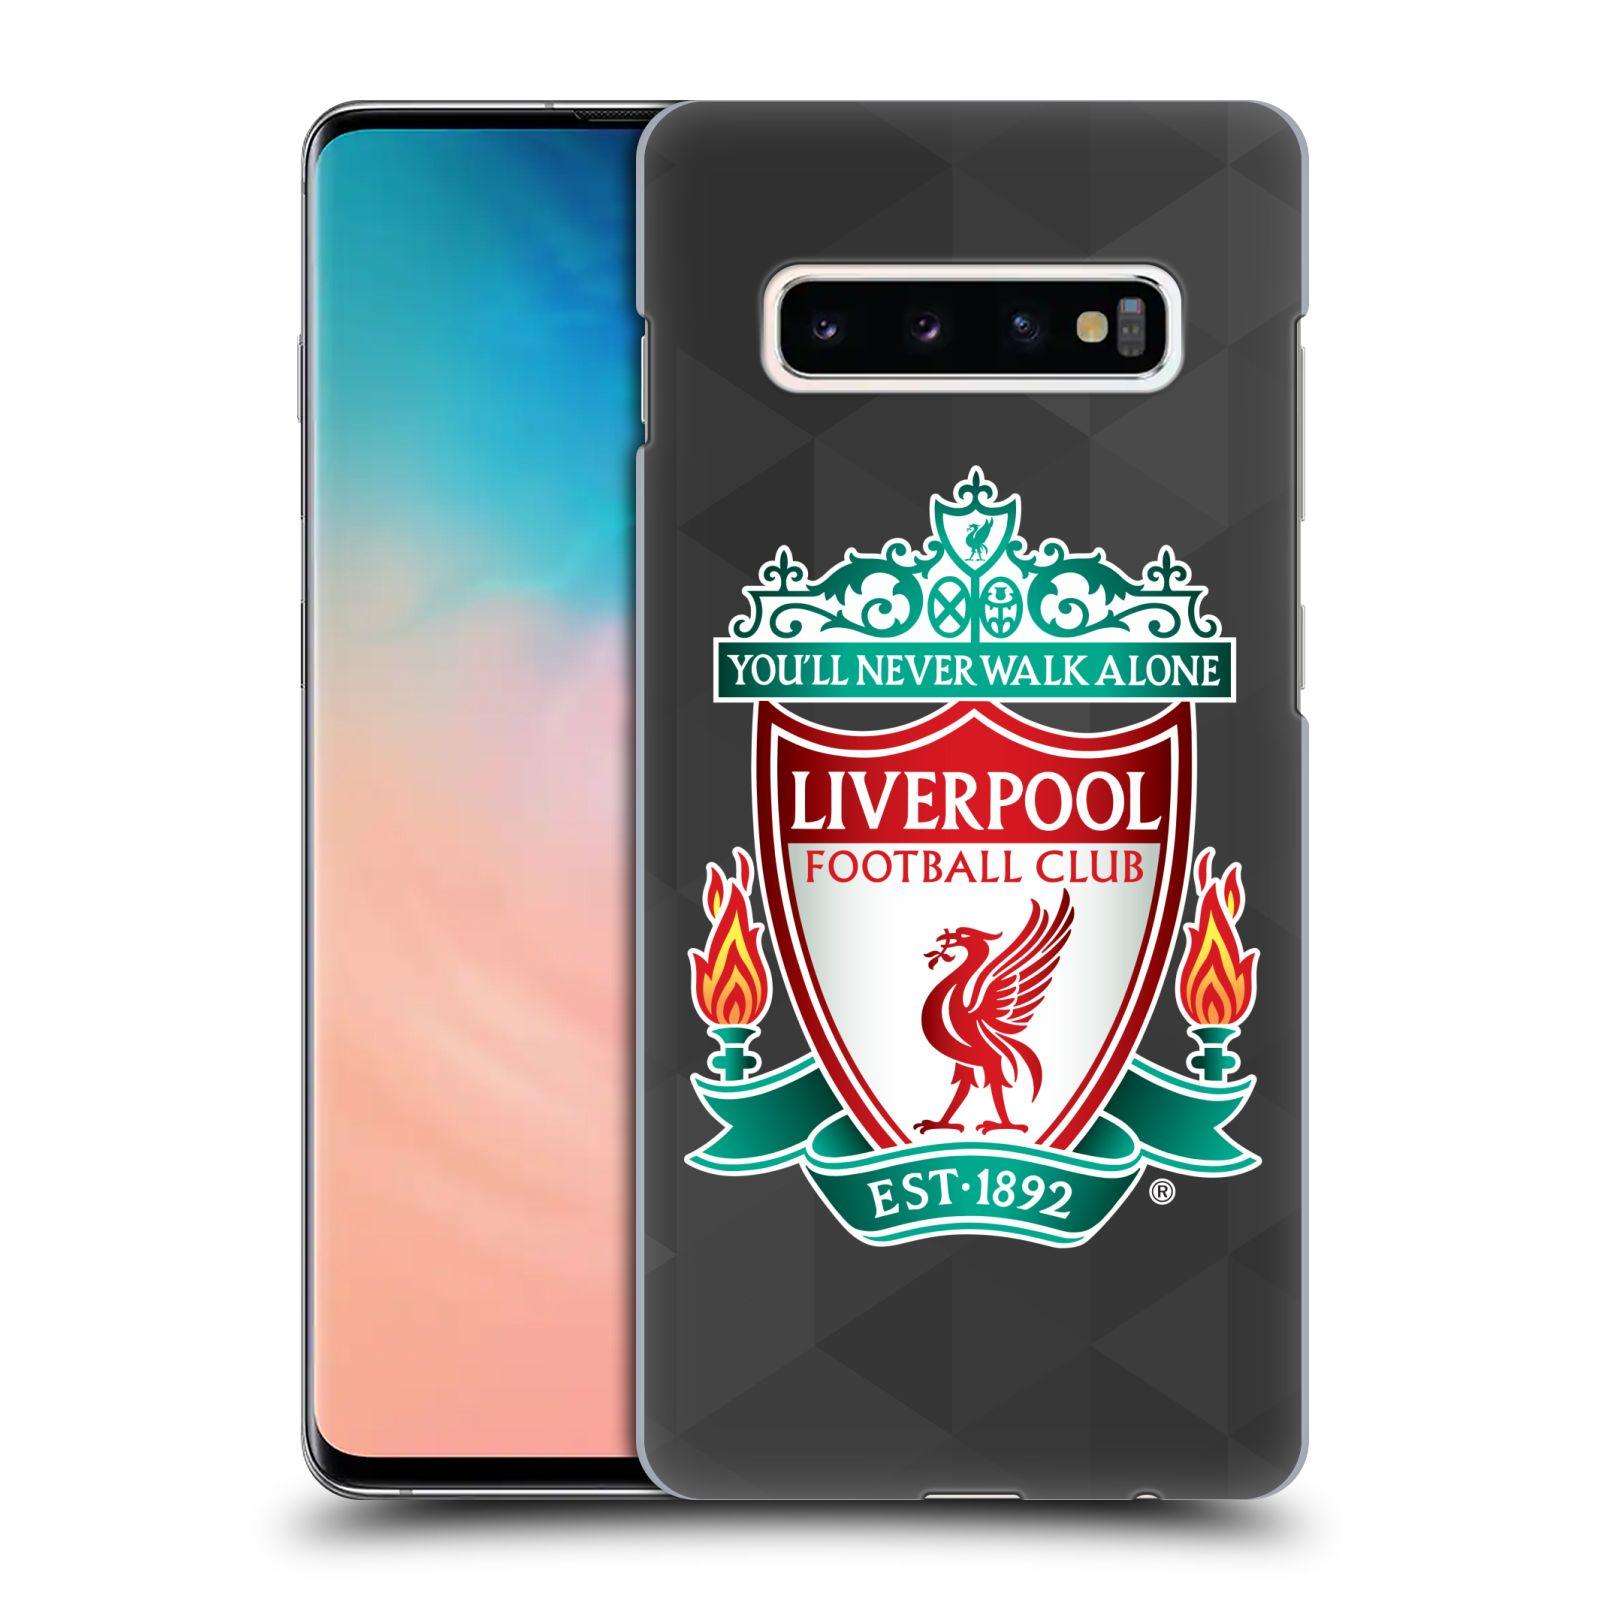 Plastové pouzdro na mobil Samsung Galaxy S10 Plus - Head Case - ZNAK LIVERPOOL FC OFFICIAL GEOMETRIC BLACK